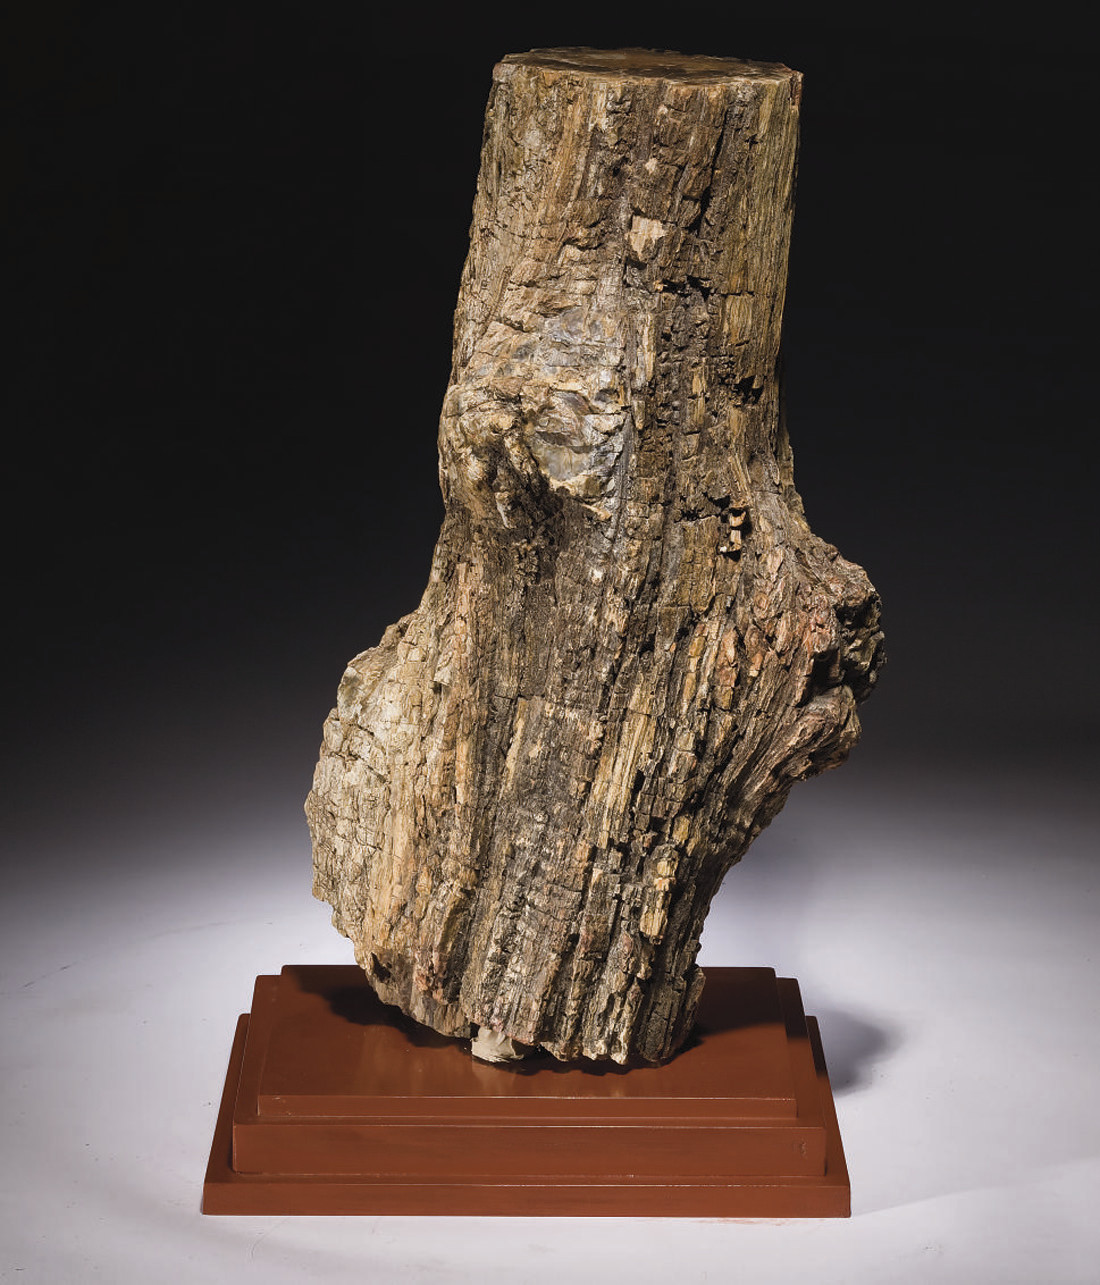 TRONC FOSSILE